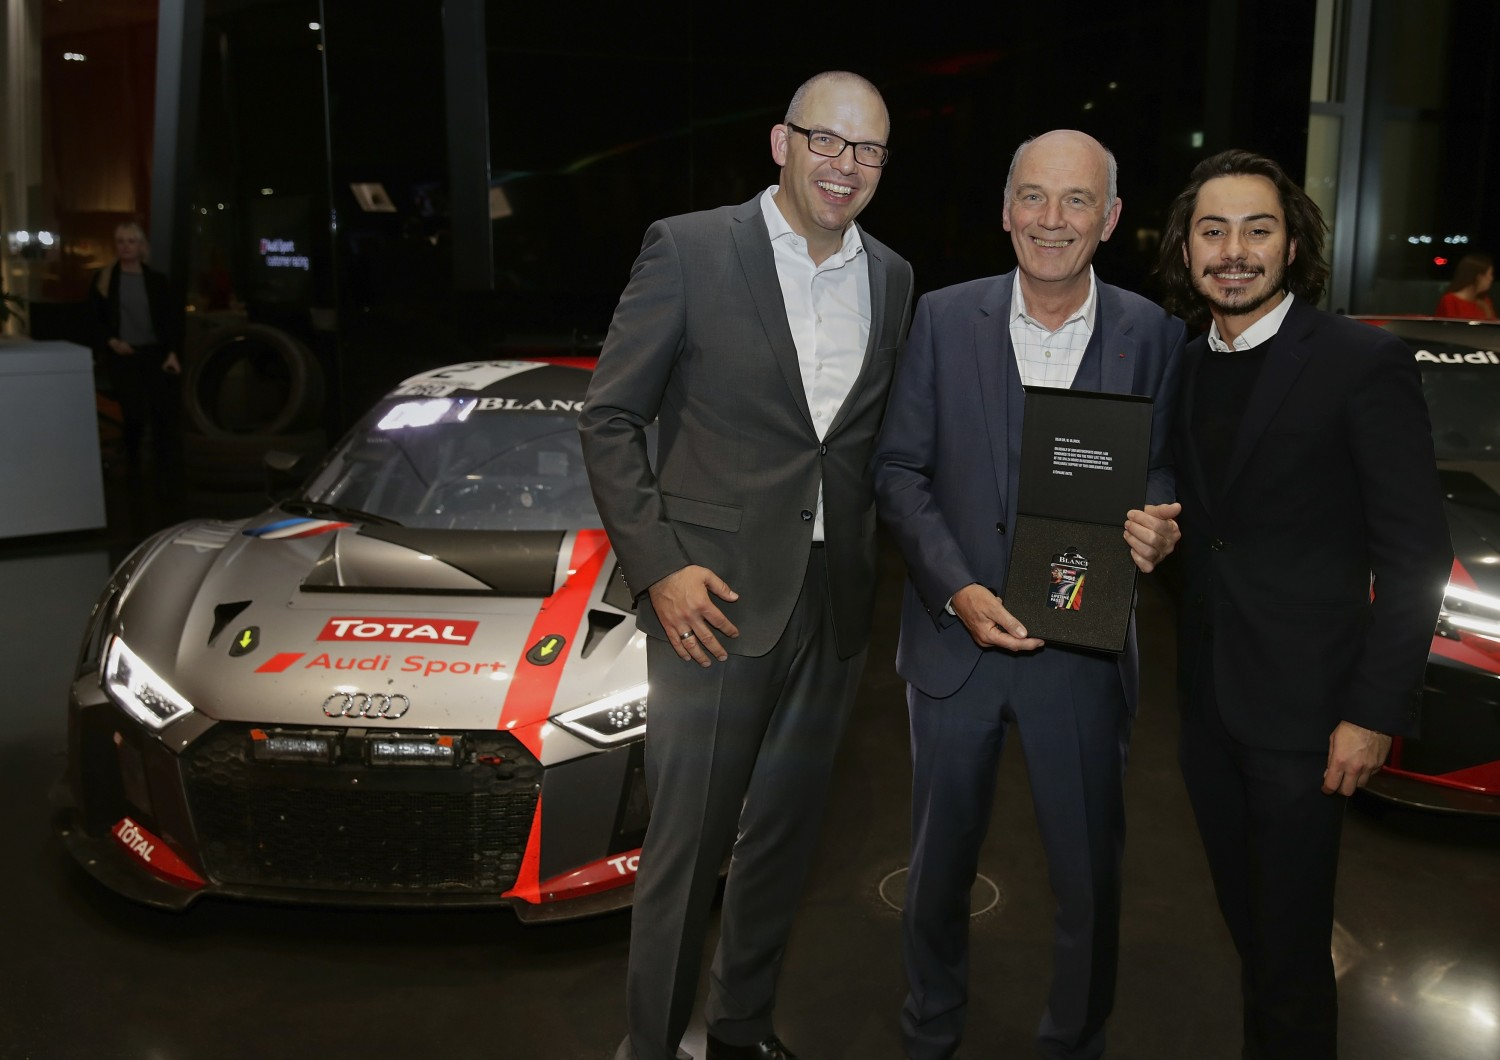 Audi's longtime head of sport Dr. Wolfgang Ullrich receives a lifelong ticket for the Total 24 Hours of Spa